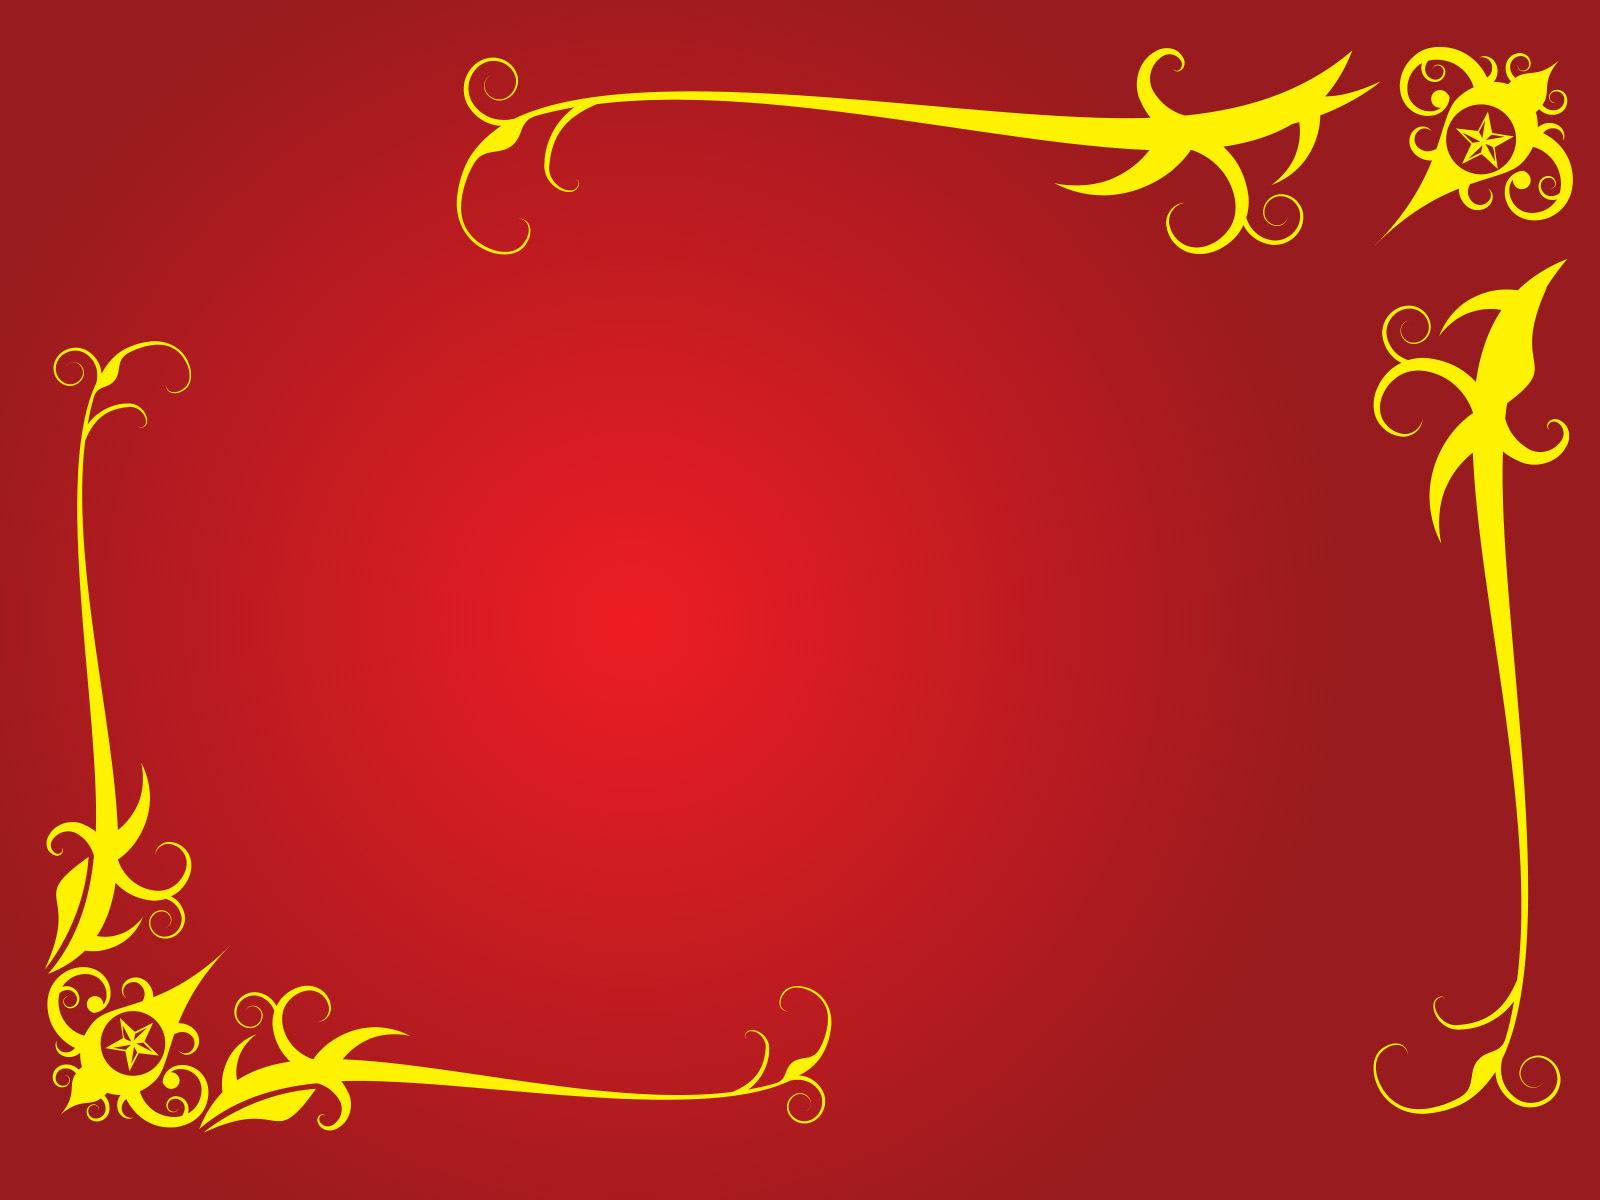 Love Spark Backgrounds Love Red Yellow Templates